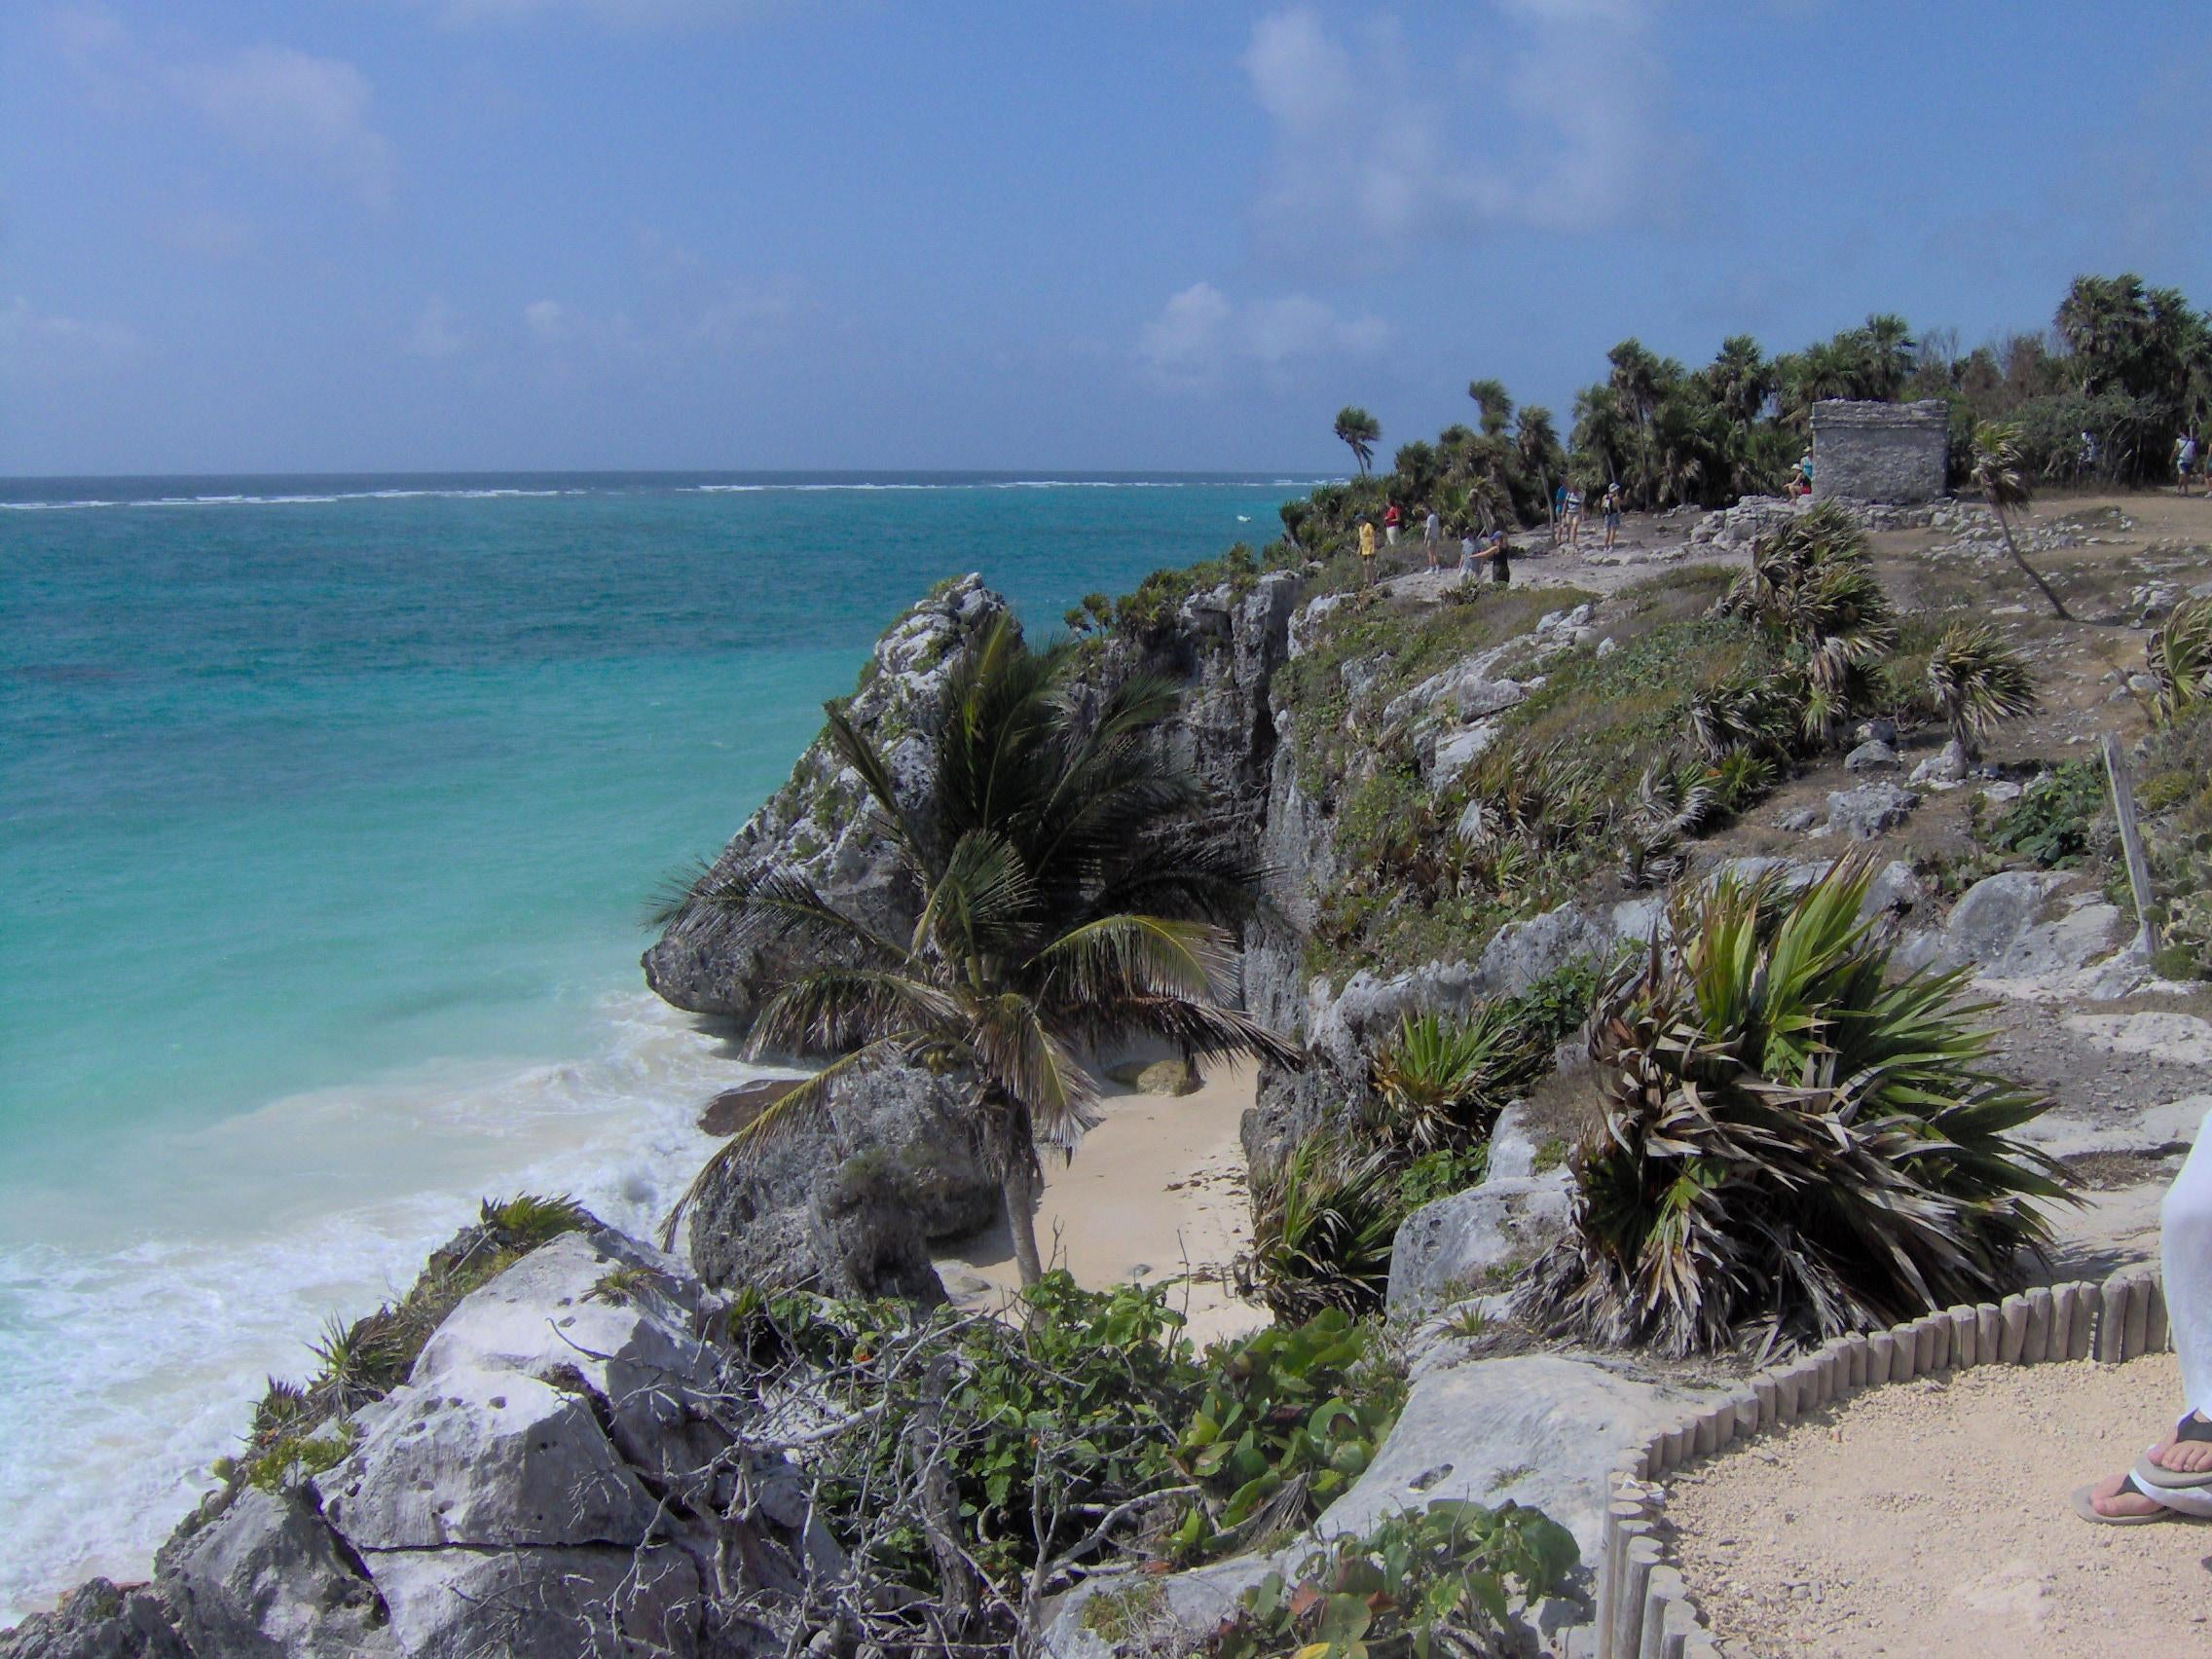 Mar en Playa de Tulum